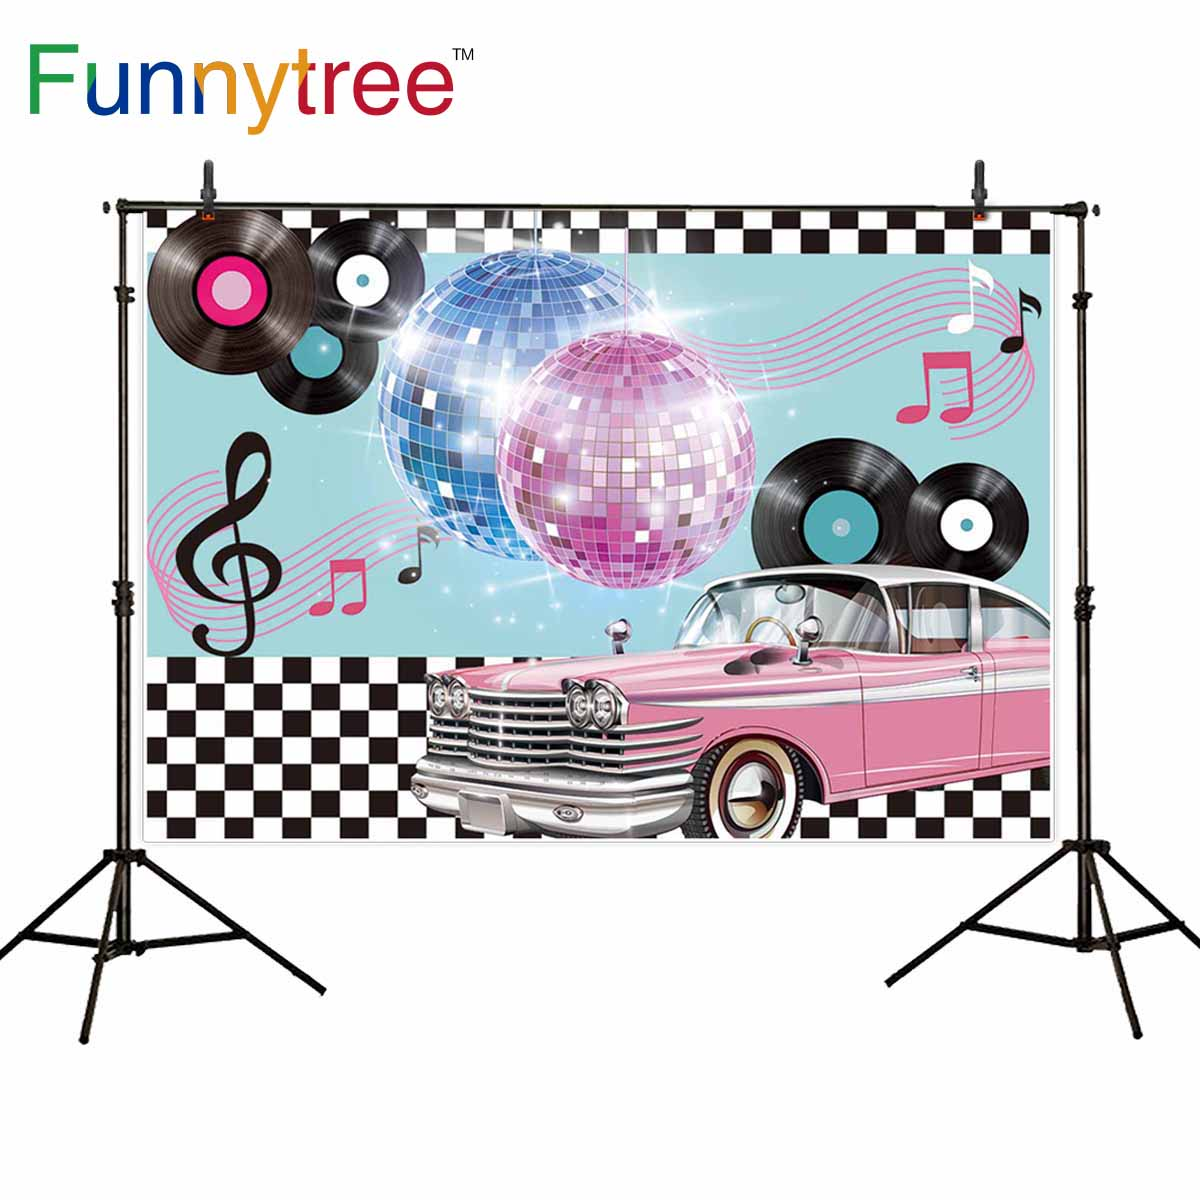 Funnytree photocall photography music luxurious car Disco 90 party Black white plaid backdrop photophone camera photo background image